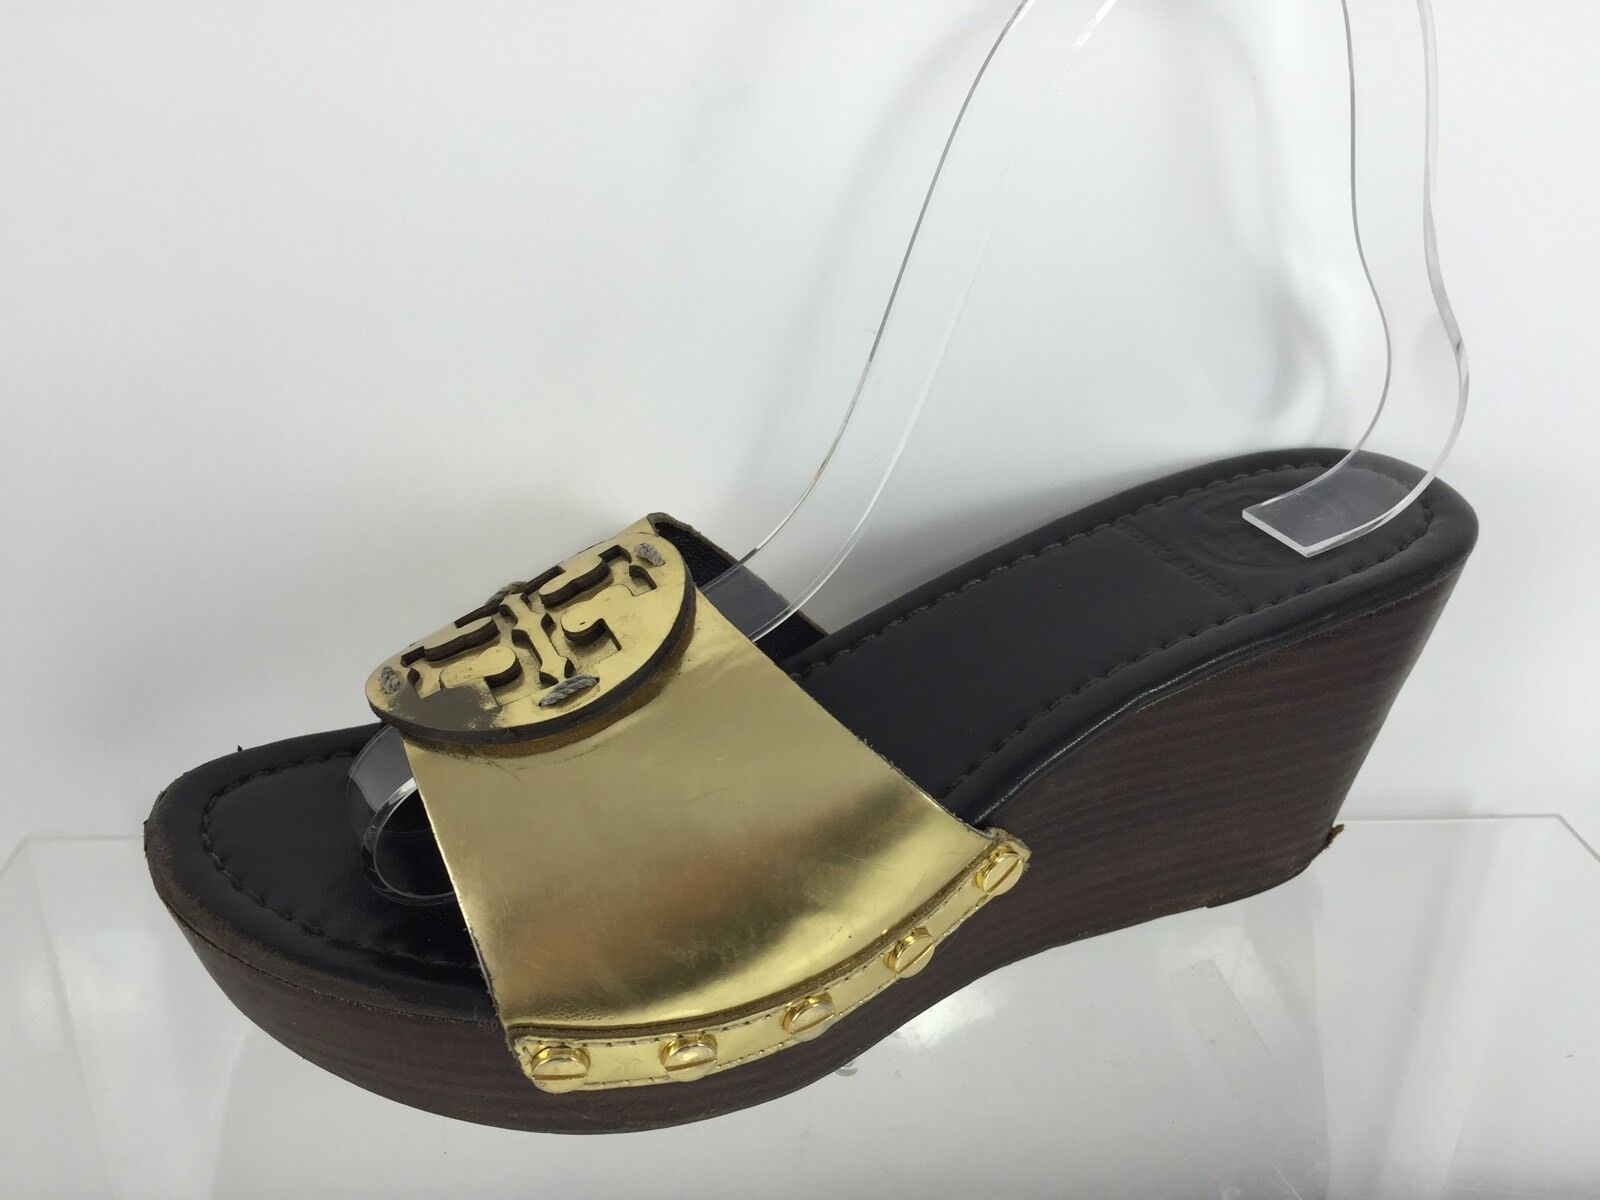 Tory Burch Donna Metallic Gold Leather Sandals 6.5 M